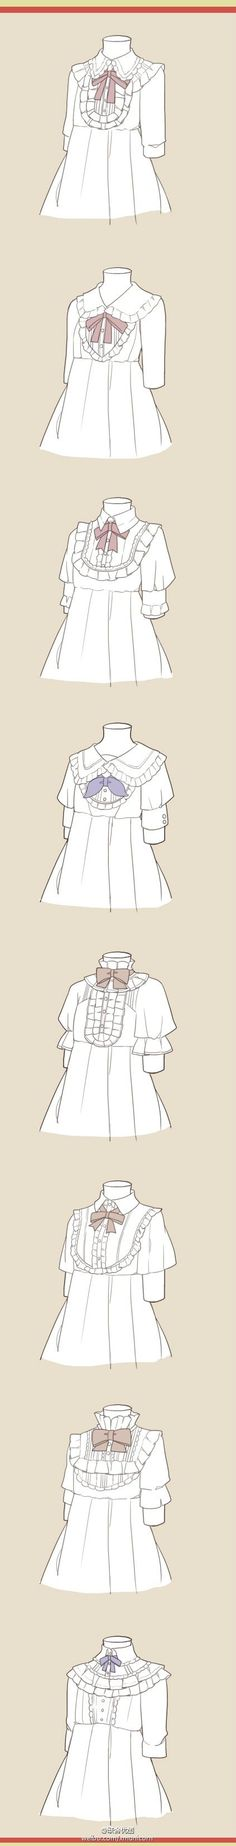 frilly ans fancy dresses and tops